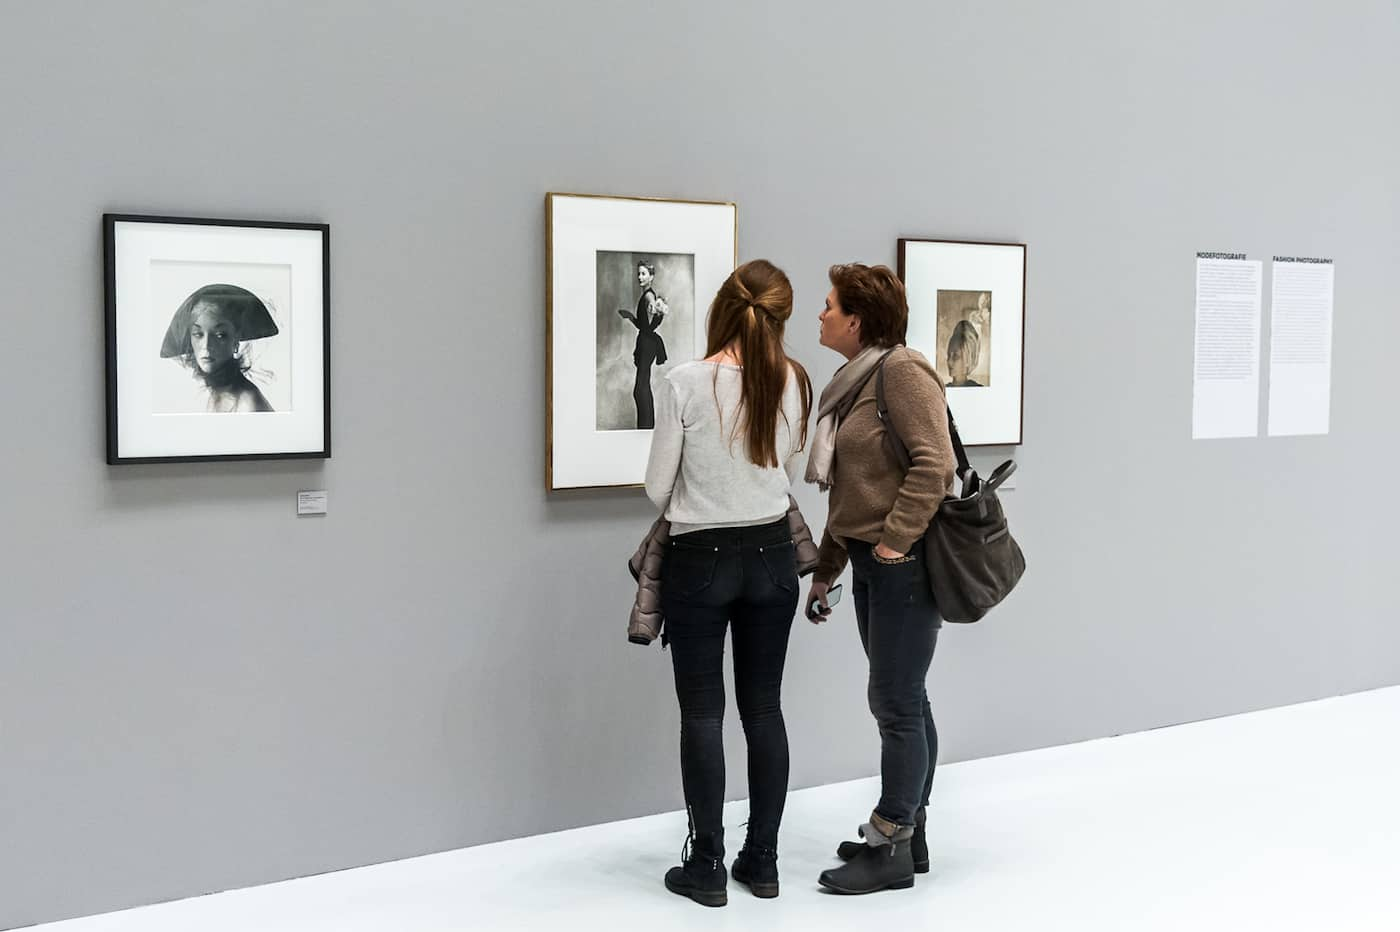 Irving Penn: Ausstellung in den Deichtorhallen in Hamburg